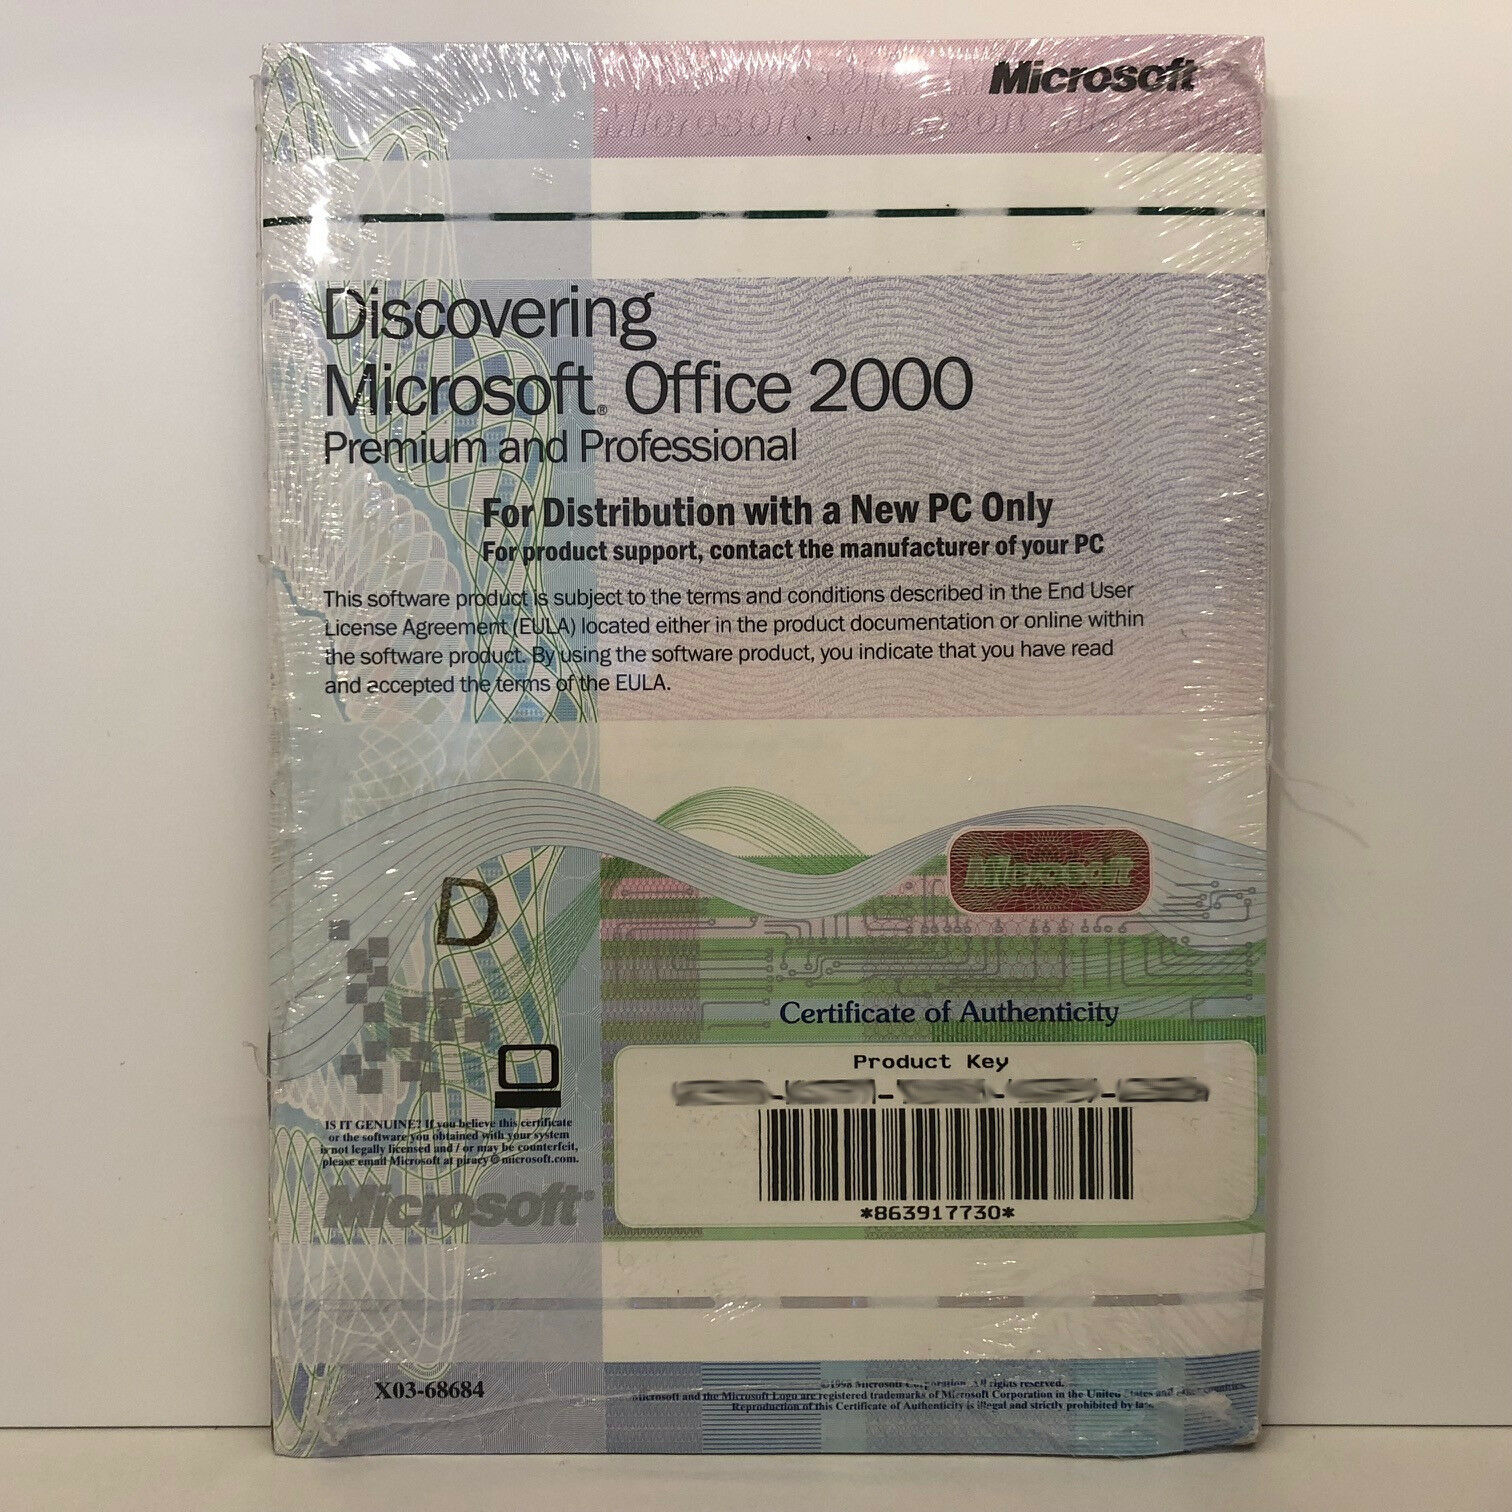 microsoft office 2000 Microsoft office 2000 update full version, microsoft office 2007, microsoft office 2003 -, microsoft office 2003 update 20090113.